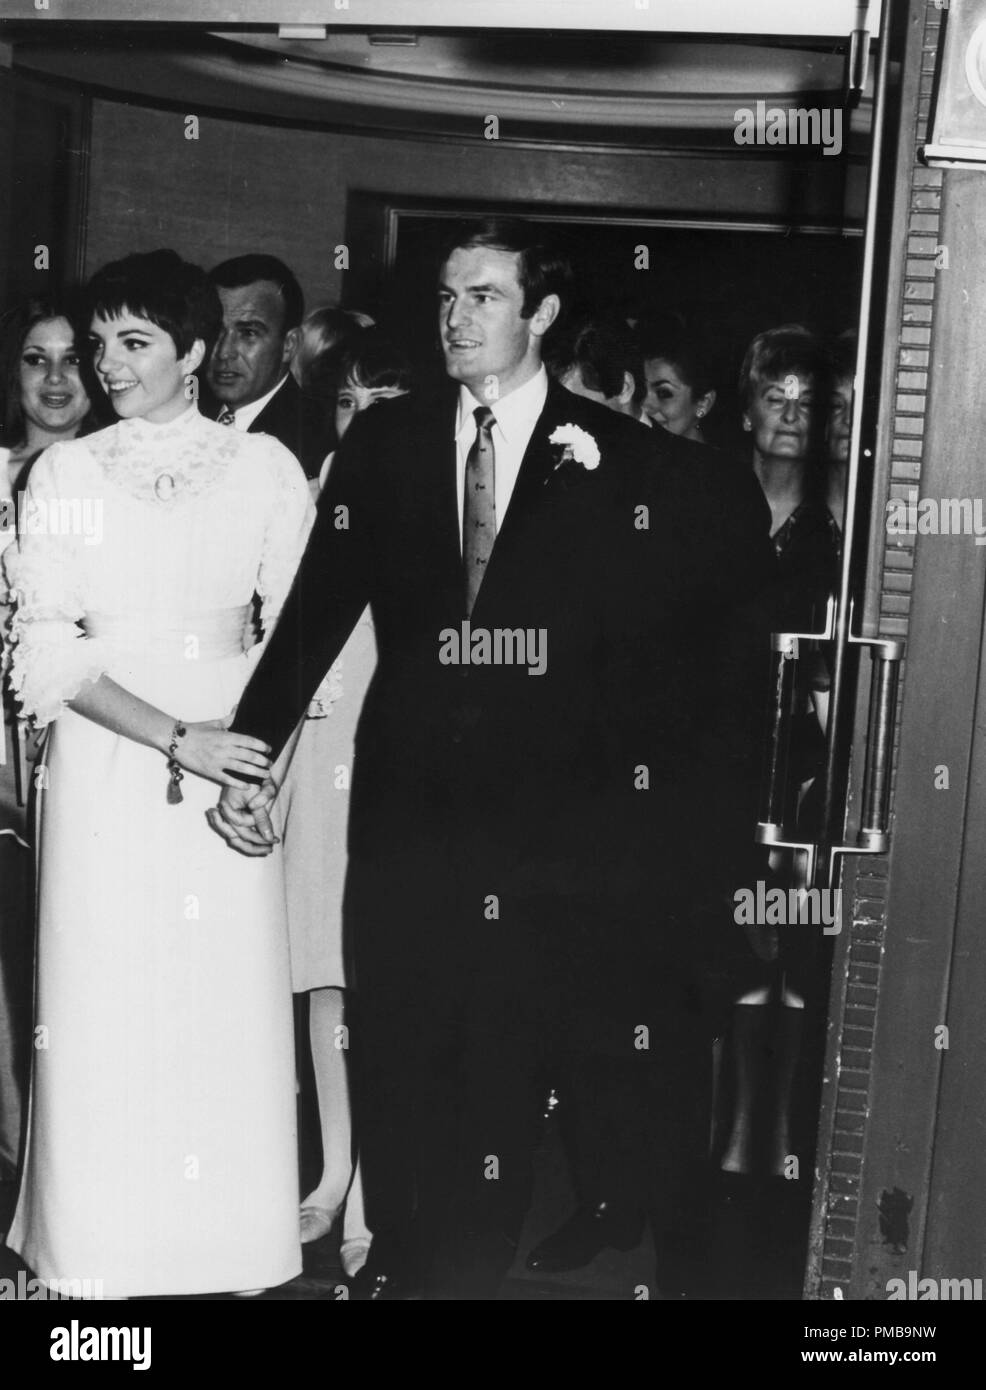 Wedding March 3.Liza Minnelli And Peter Allen At Their Wedding March 3